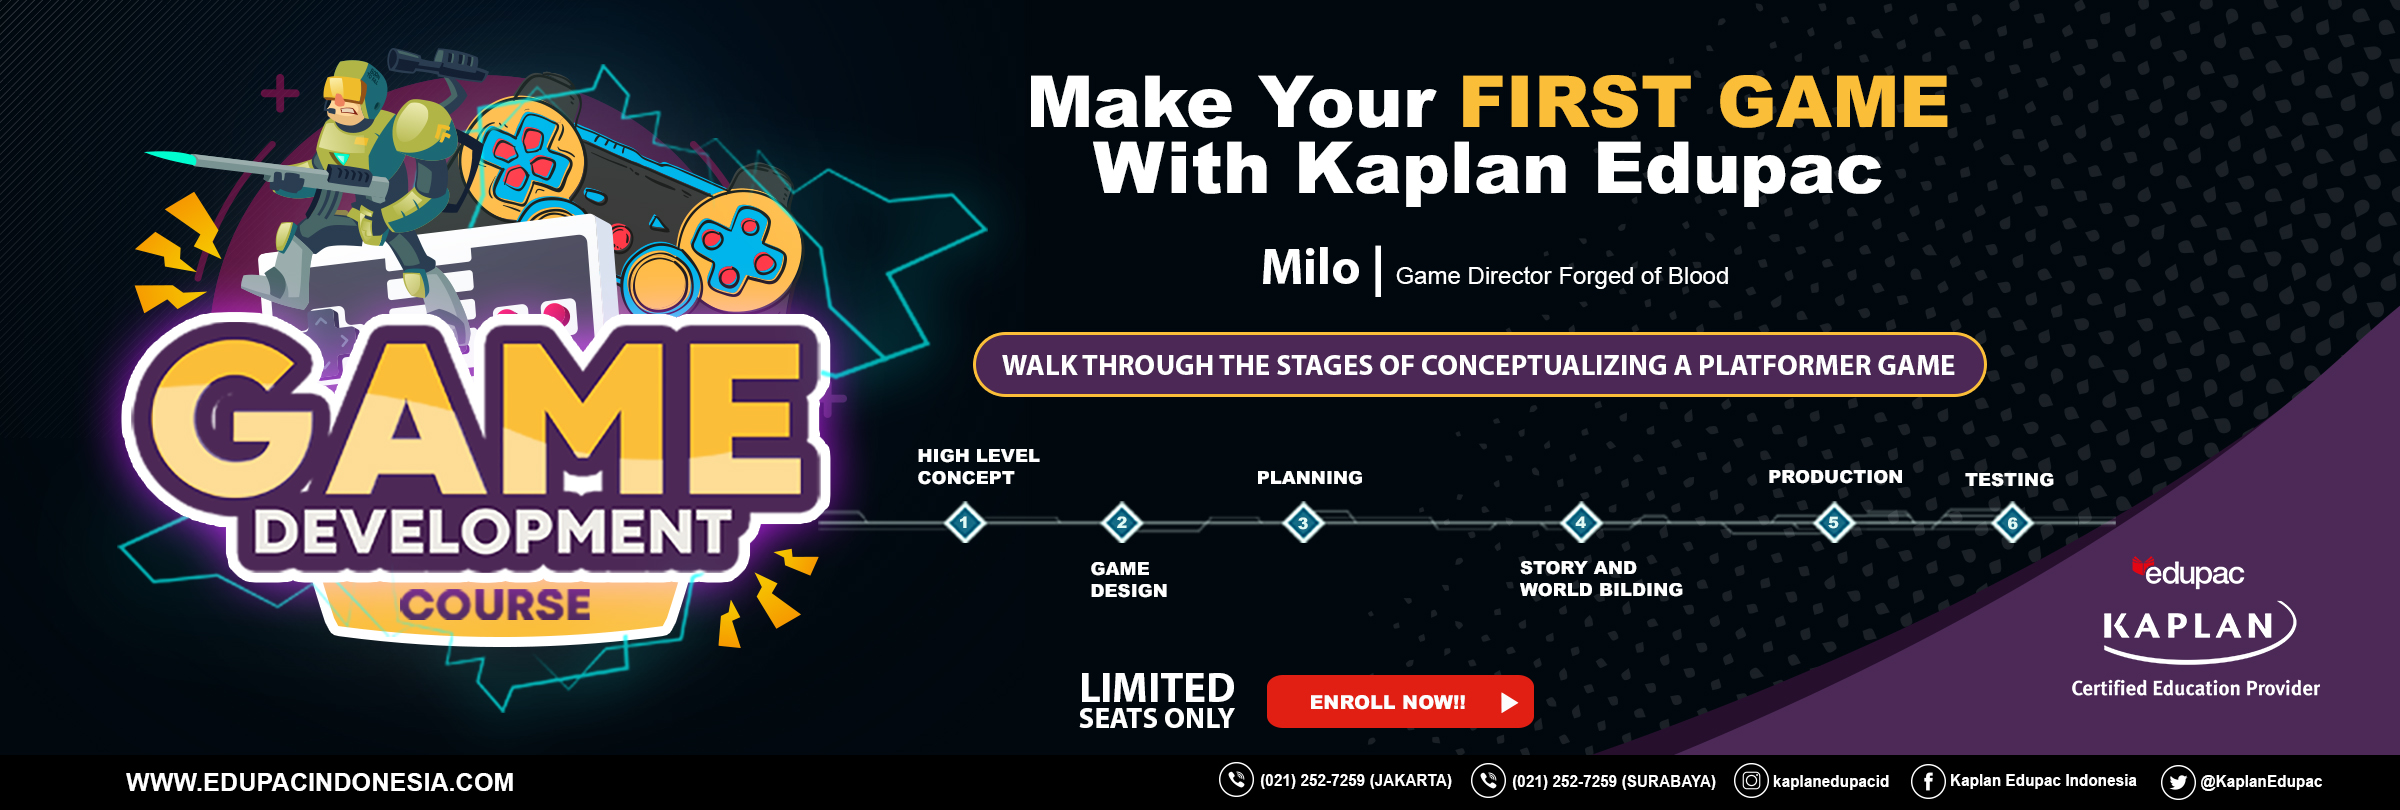 Make Your First Game with Kaplan Edupac (Game Development Course)